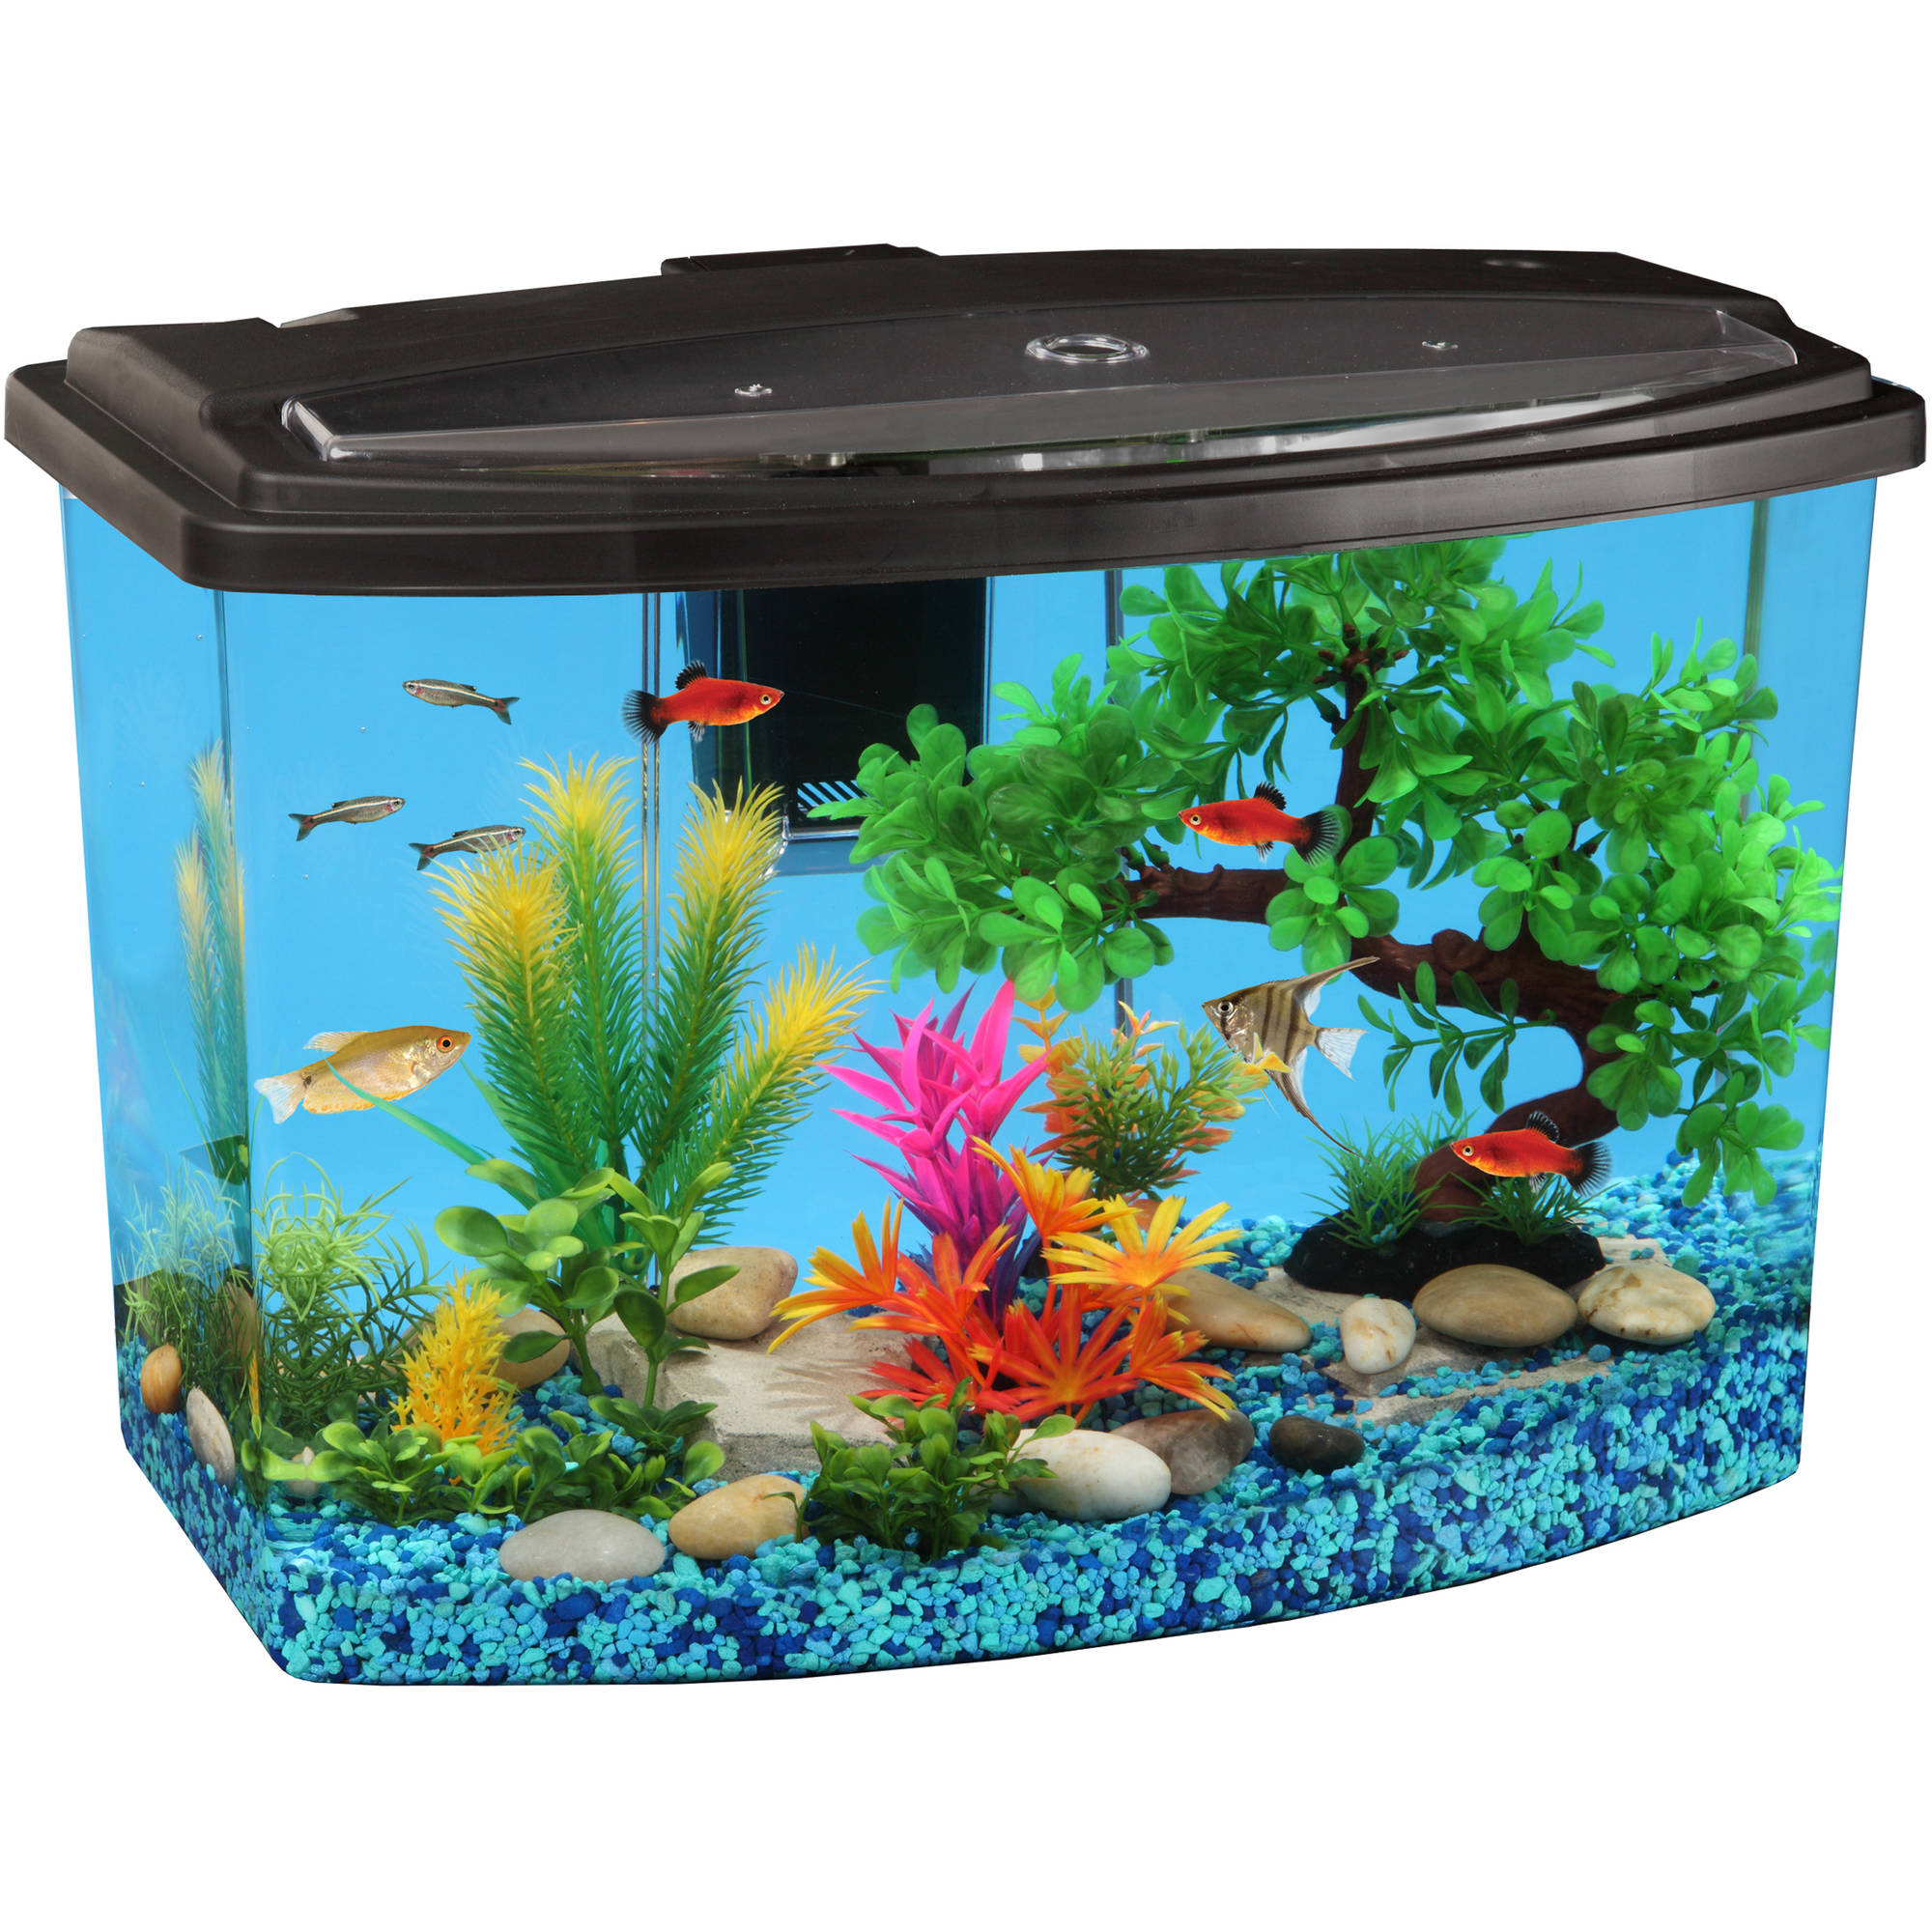 7 gallon bow view aquarium kit with led light and power for Amazon fish tanks for sale